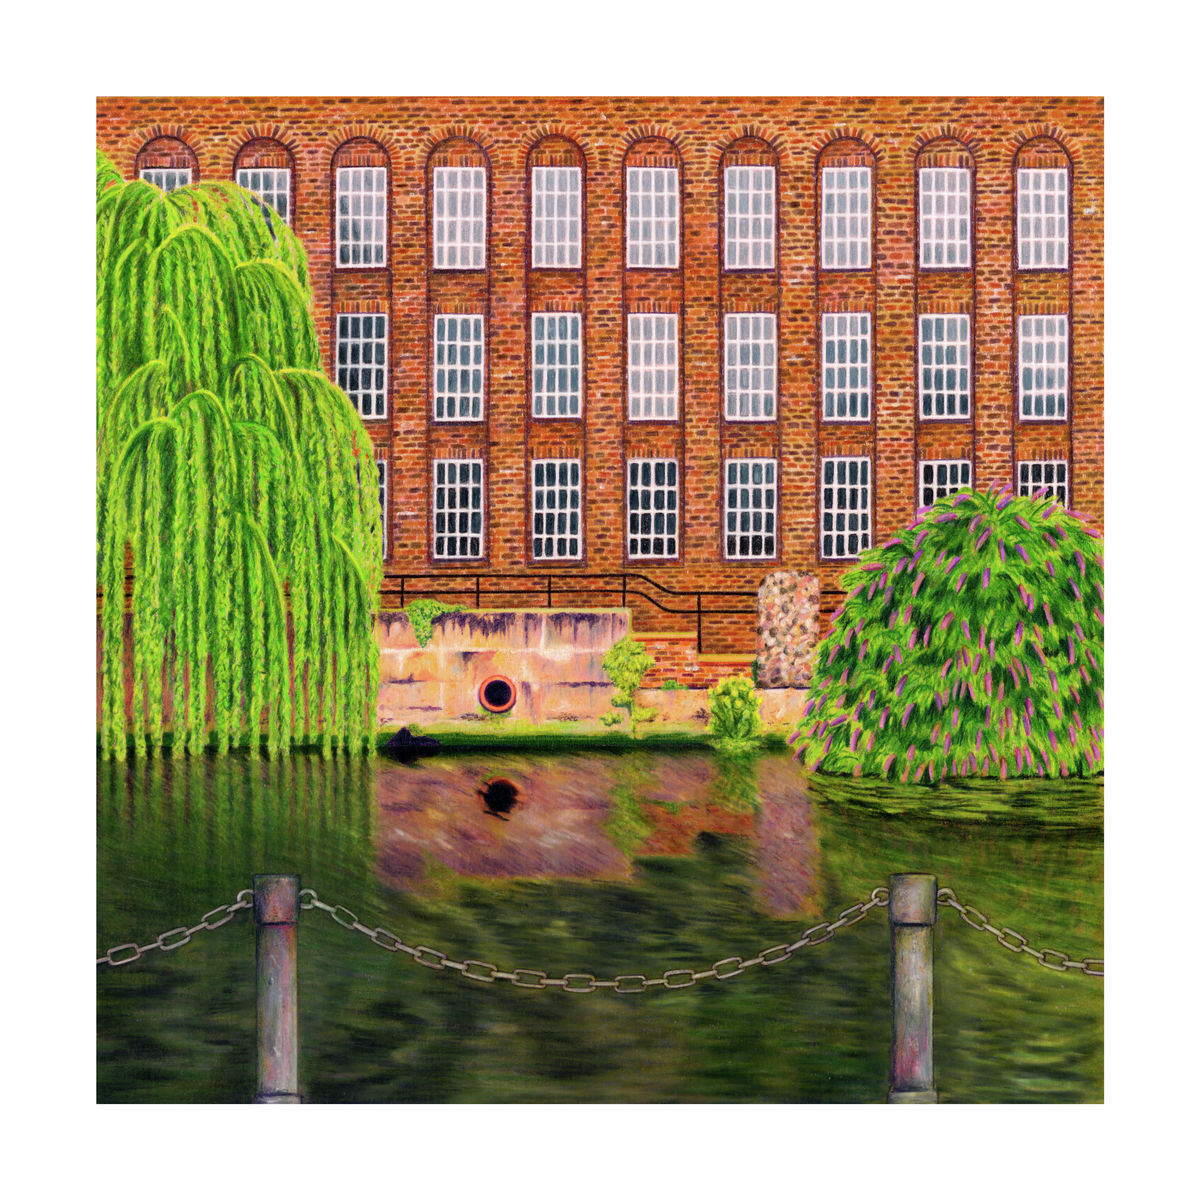 Illustration of an old Mill on the waterfront of the River Wensum in Norwich, Norfolk.